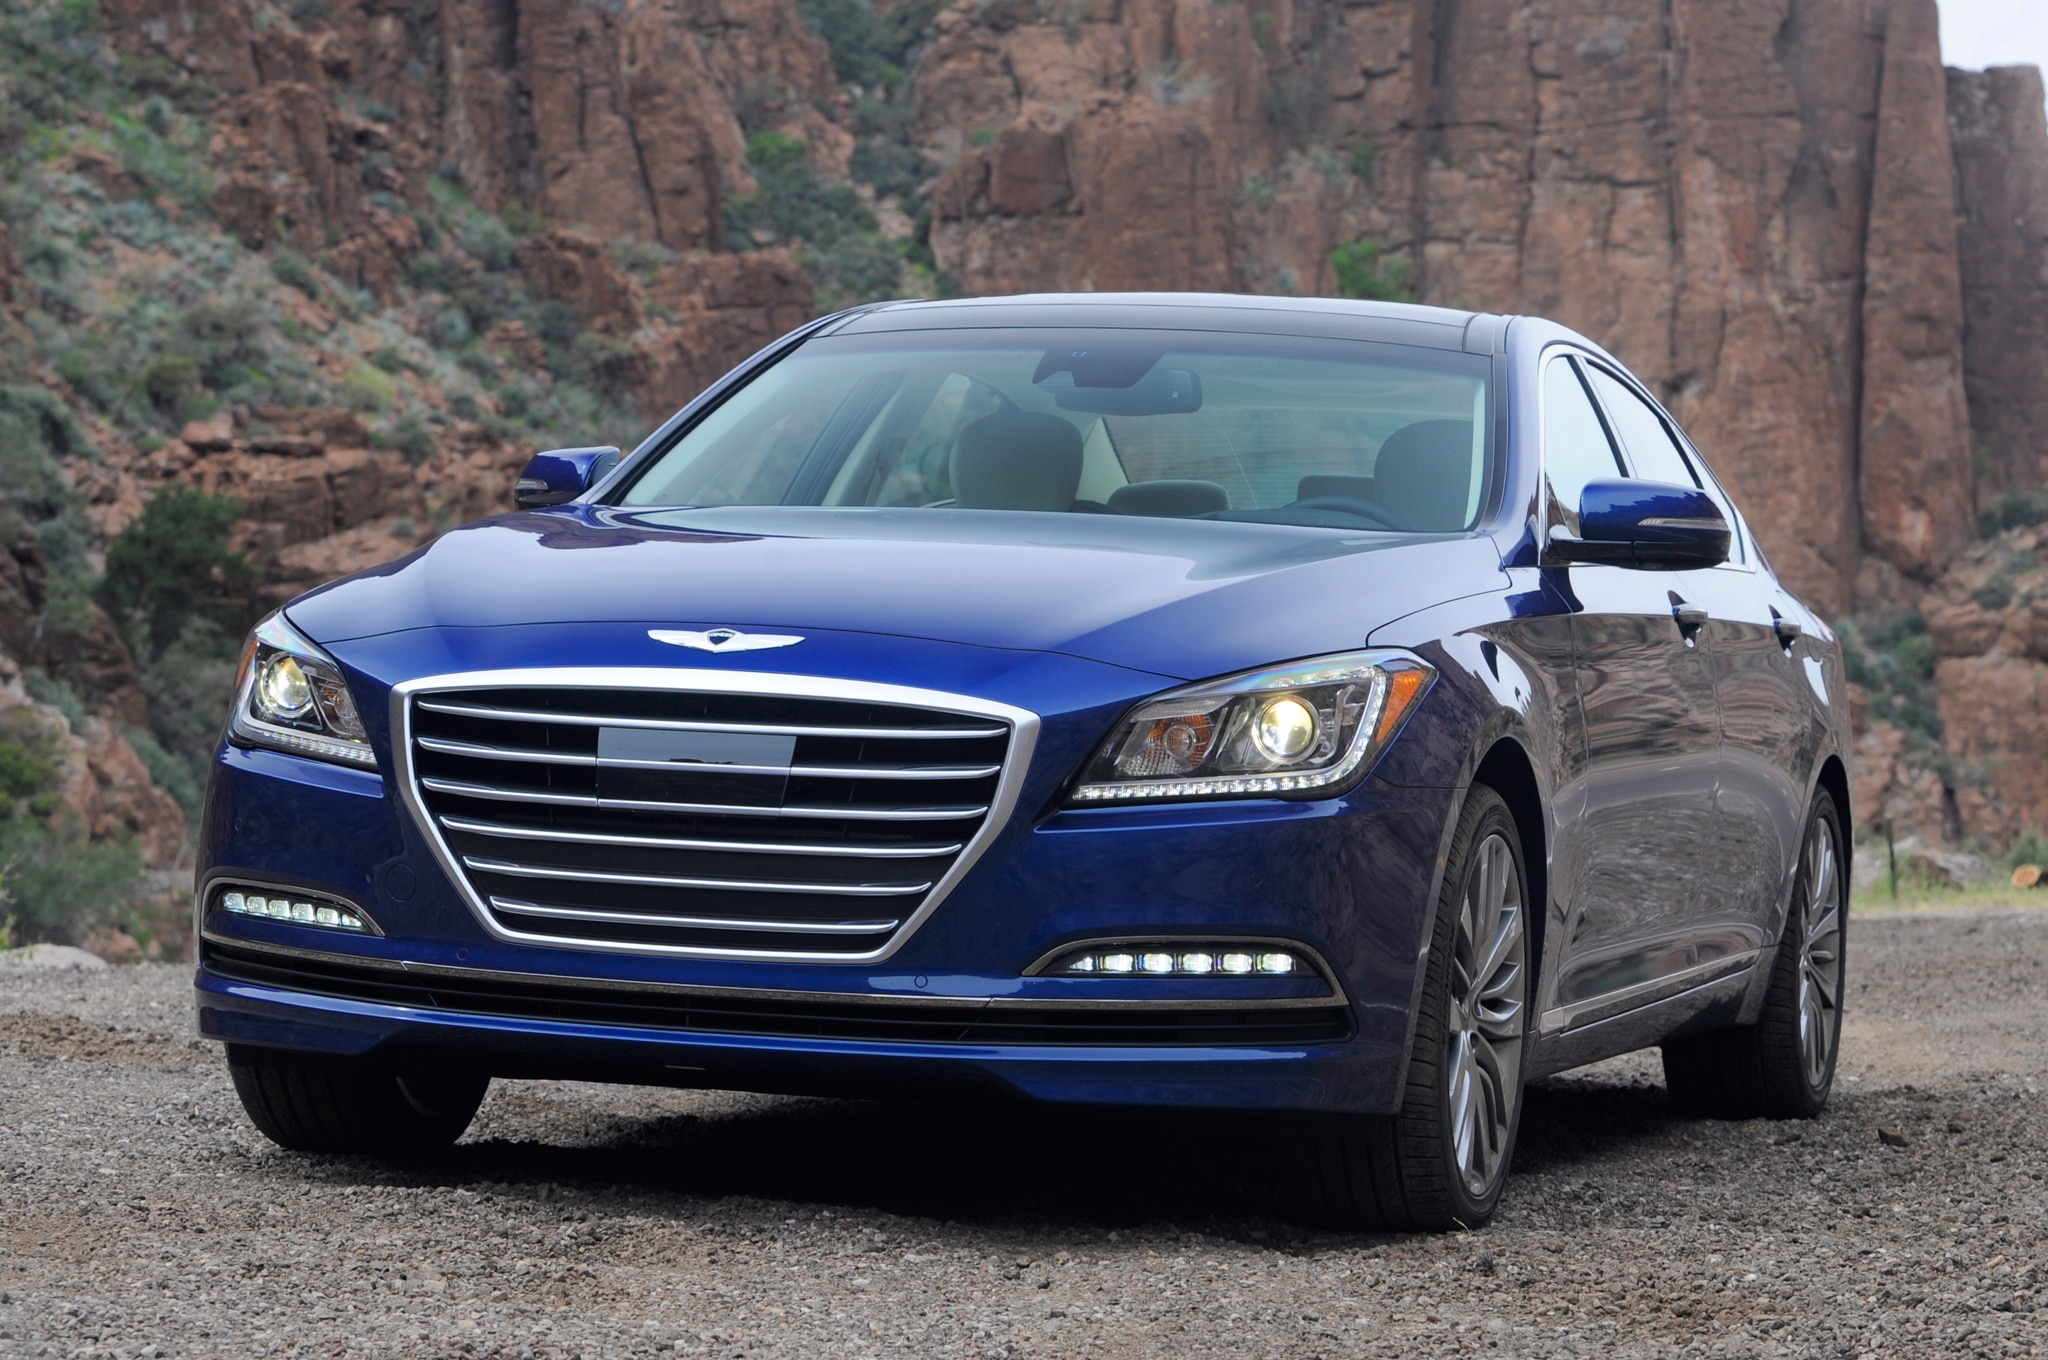 2015 Hyundai Genesis Sedan Front View Parked1